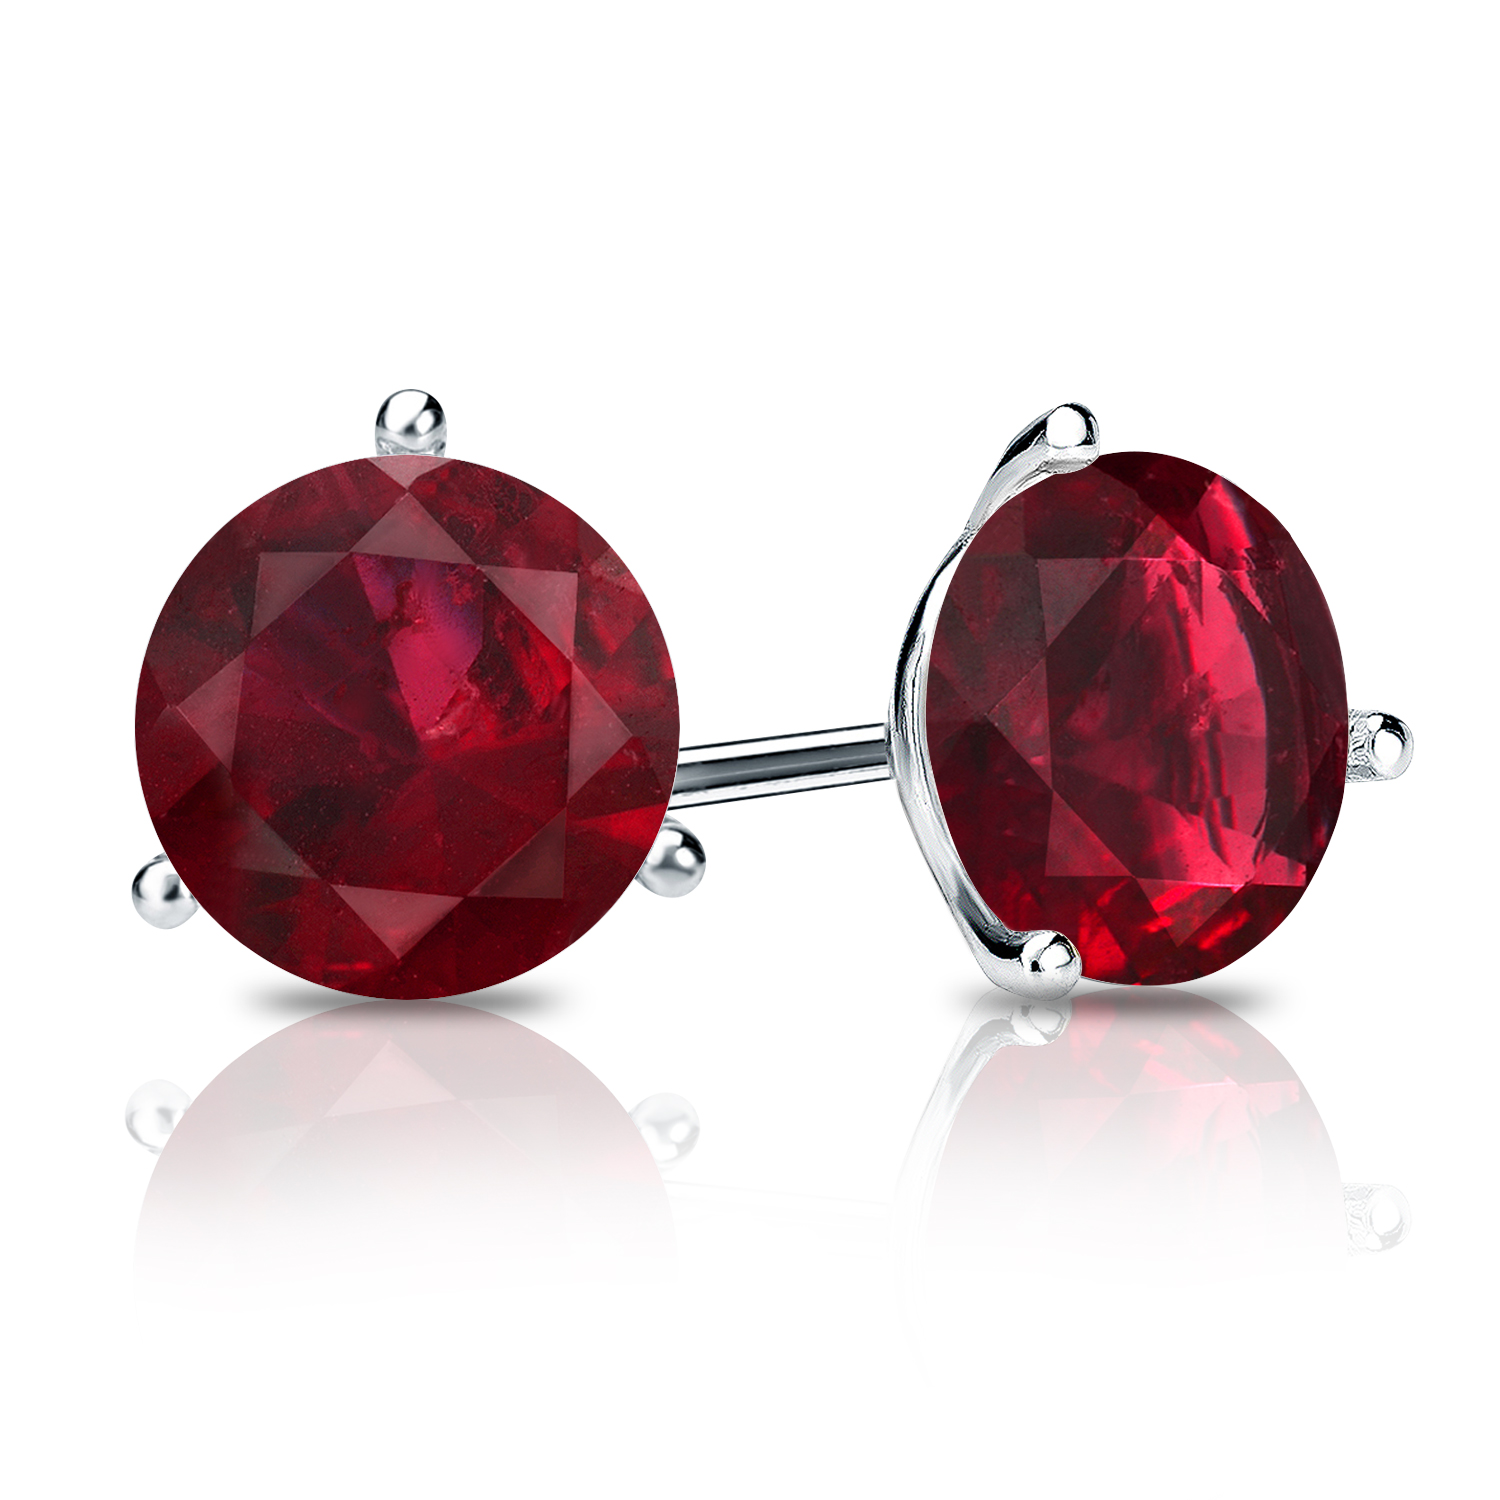 Certified 1.00 cttw Round Ruby Gemstone Stud Earrings in 14k White Gold 3-Prong Martini (Red, AAA)